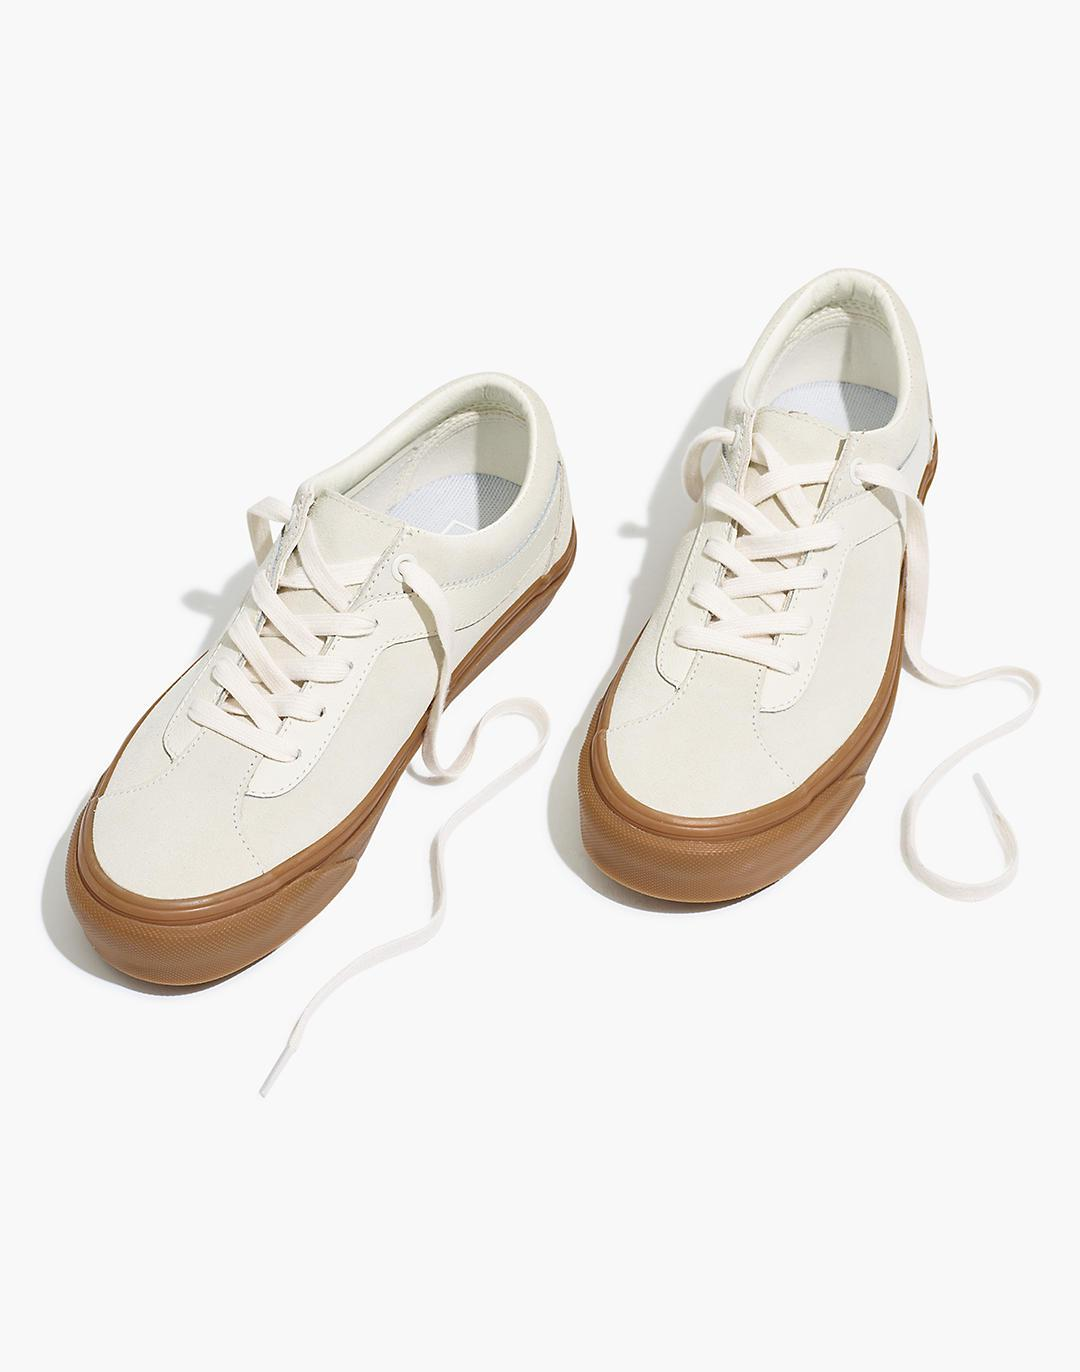 Vans® Unisex Bold NI Lace-Up Sneakers in Suede